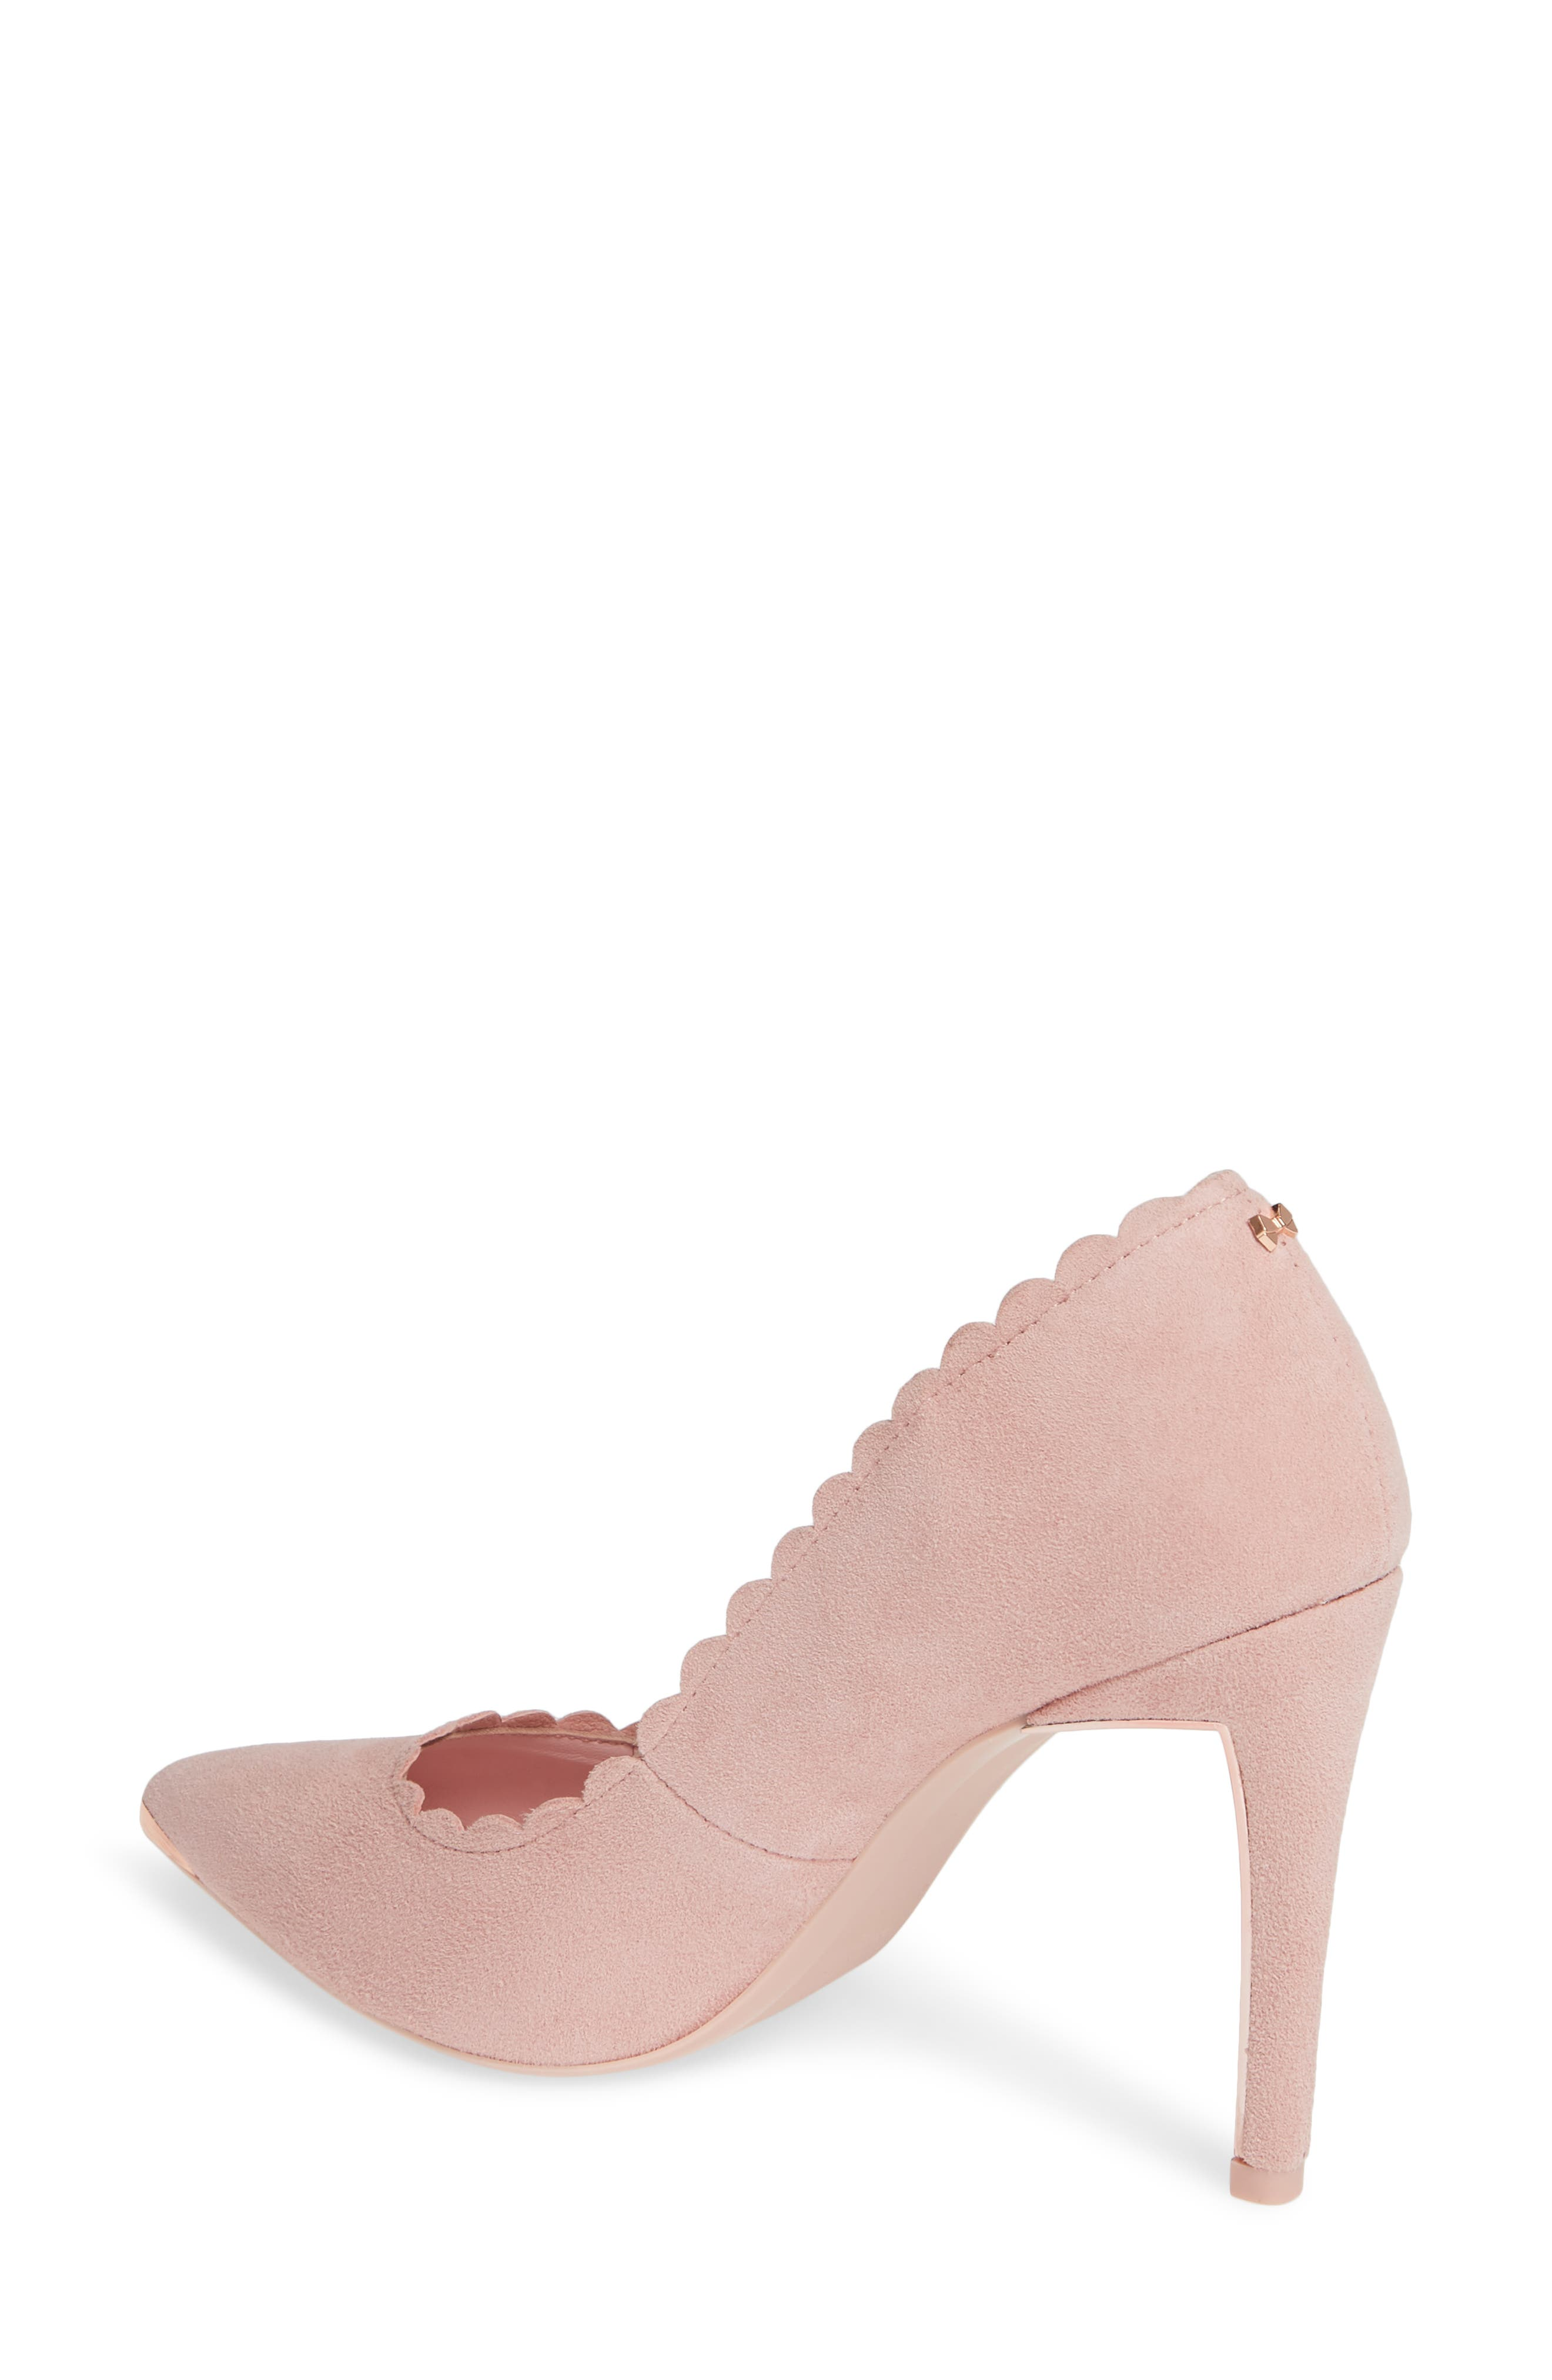 Sloana Pointy Toe Pump,                             Alternate thumbnail 2, color,                             PINK BLOSSOM SUEDE